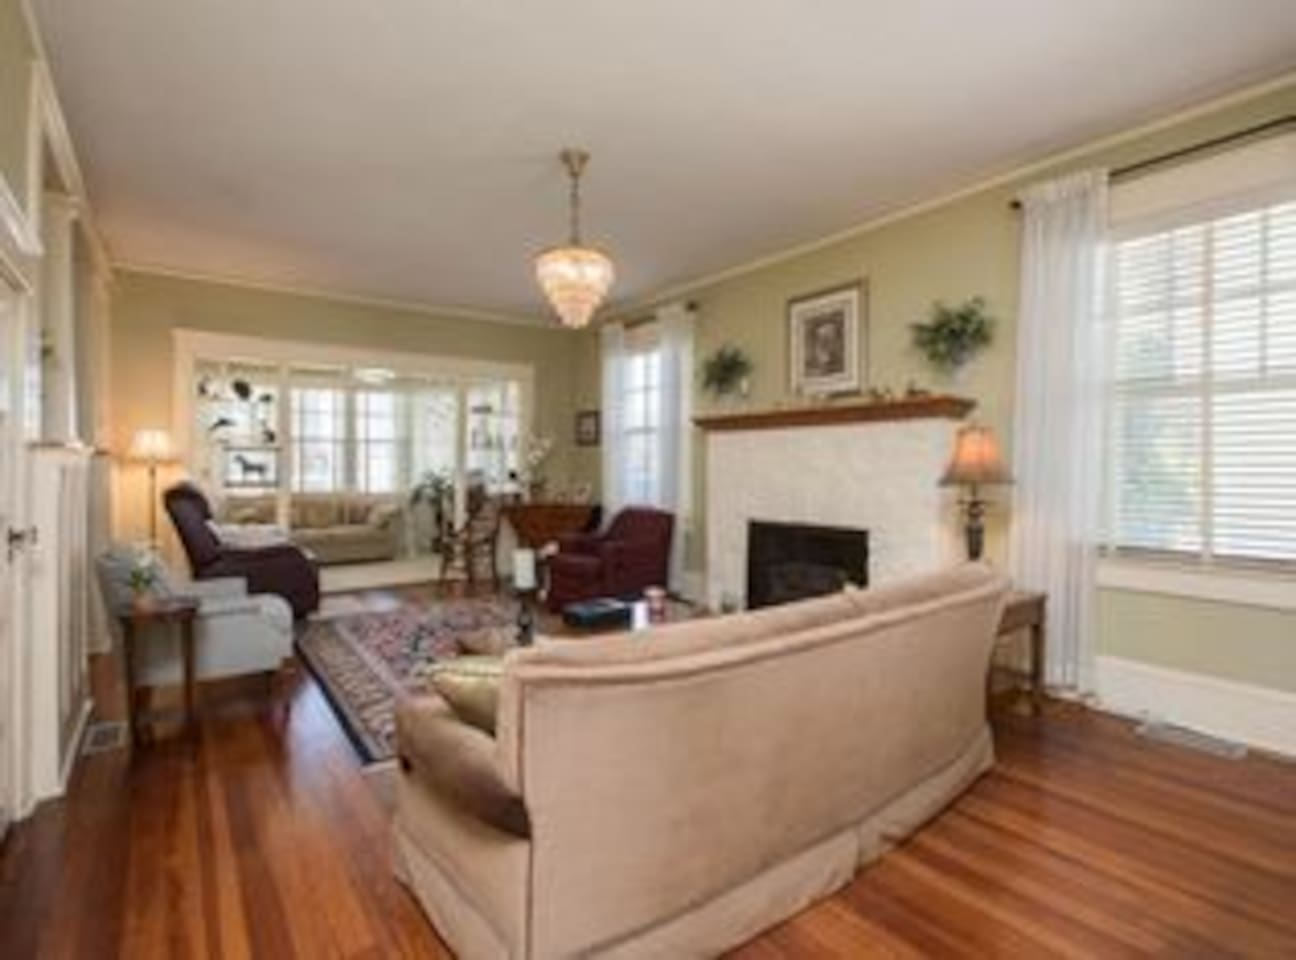 Spacious living area with cable television.